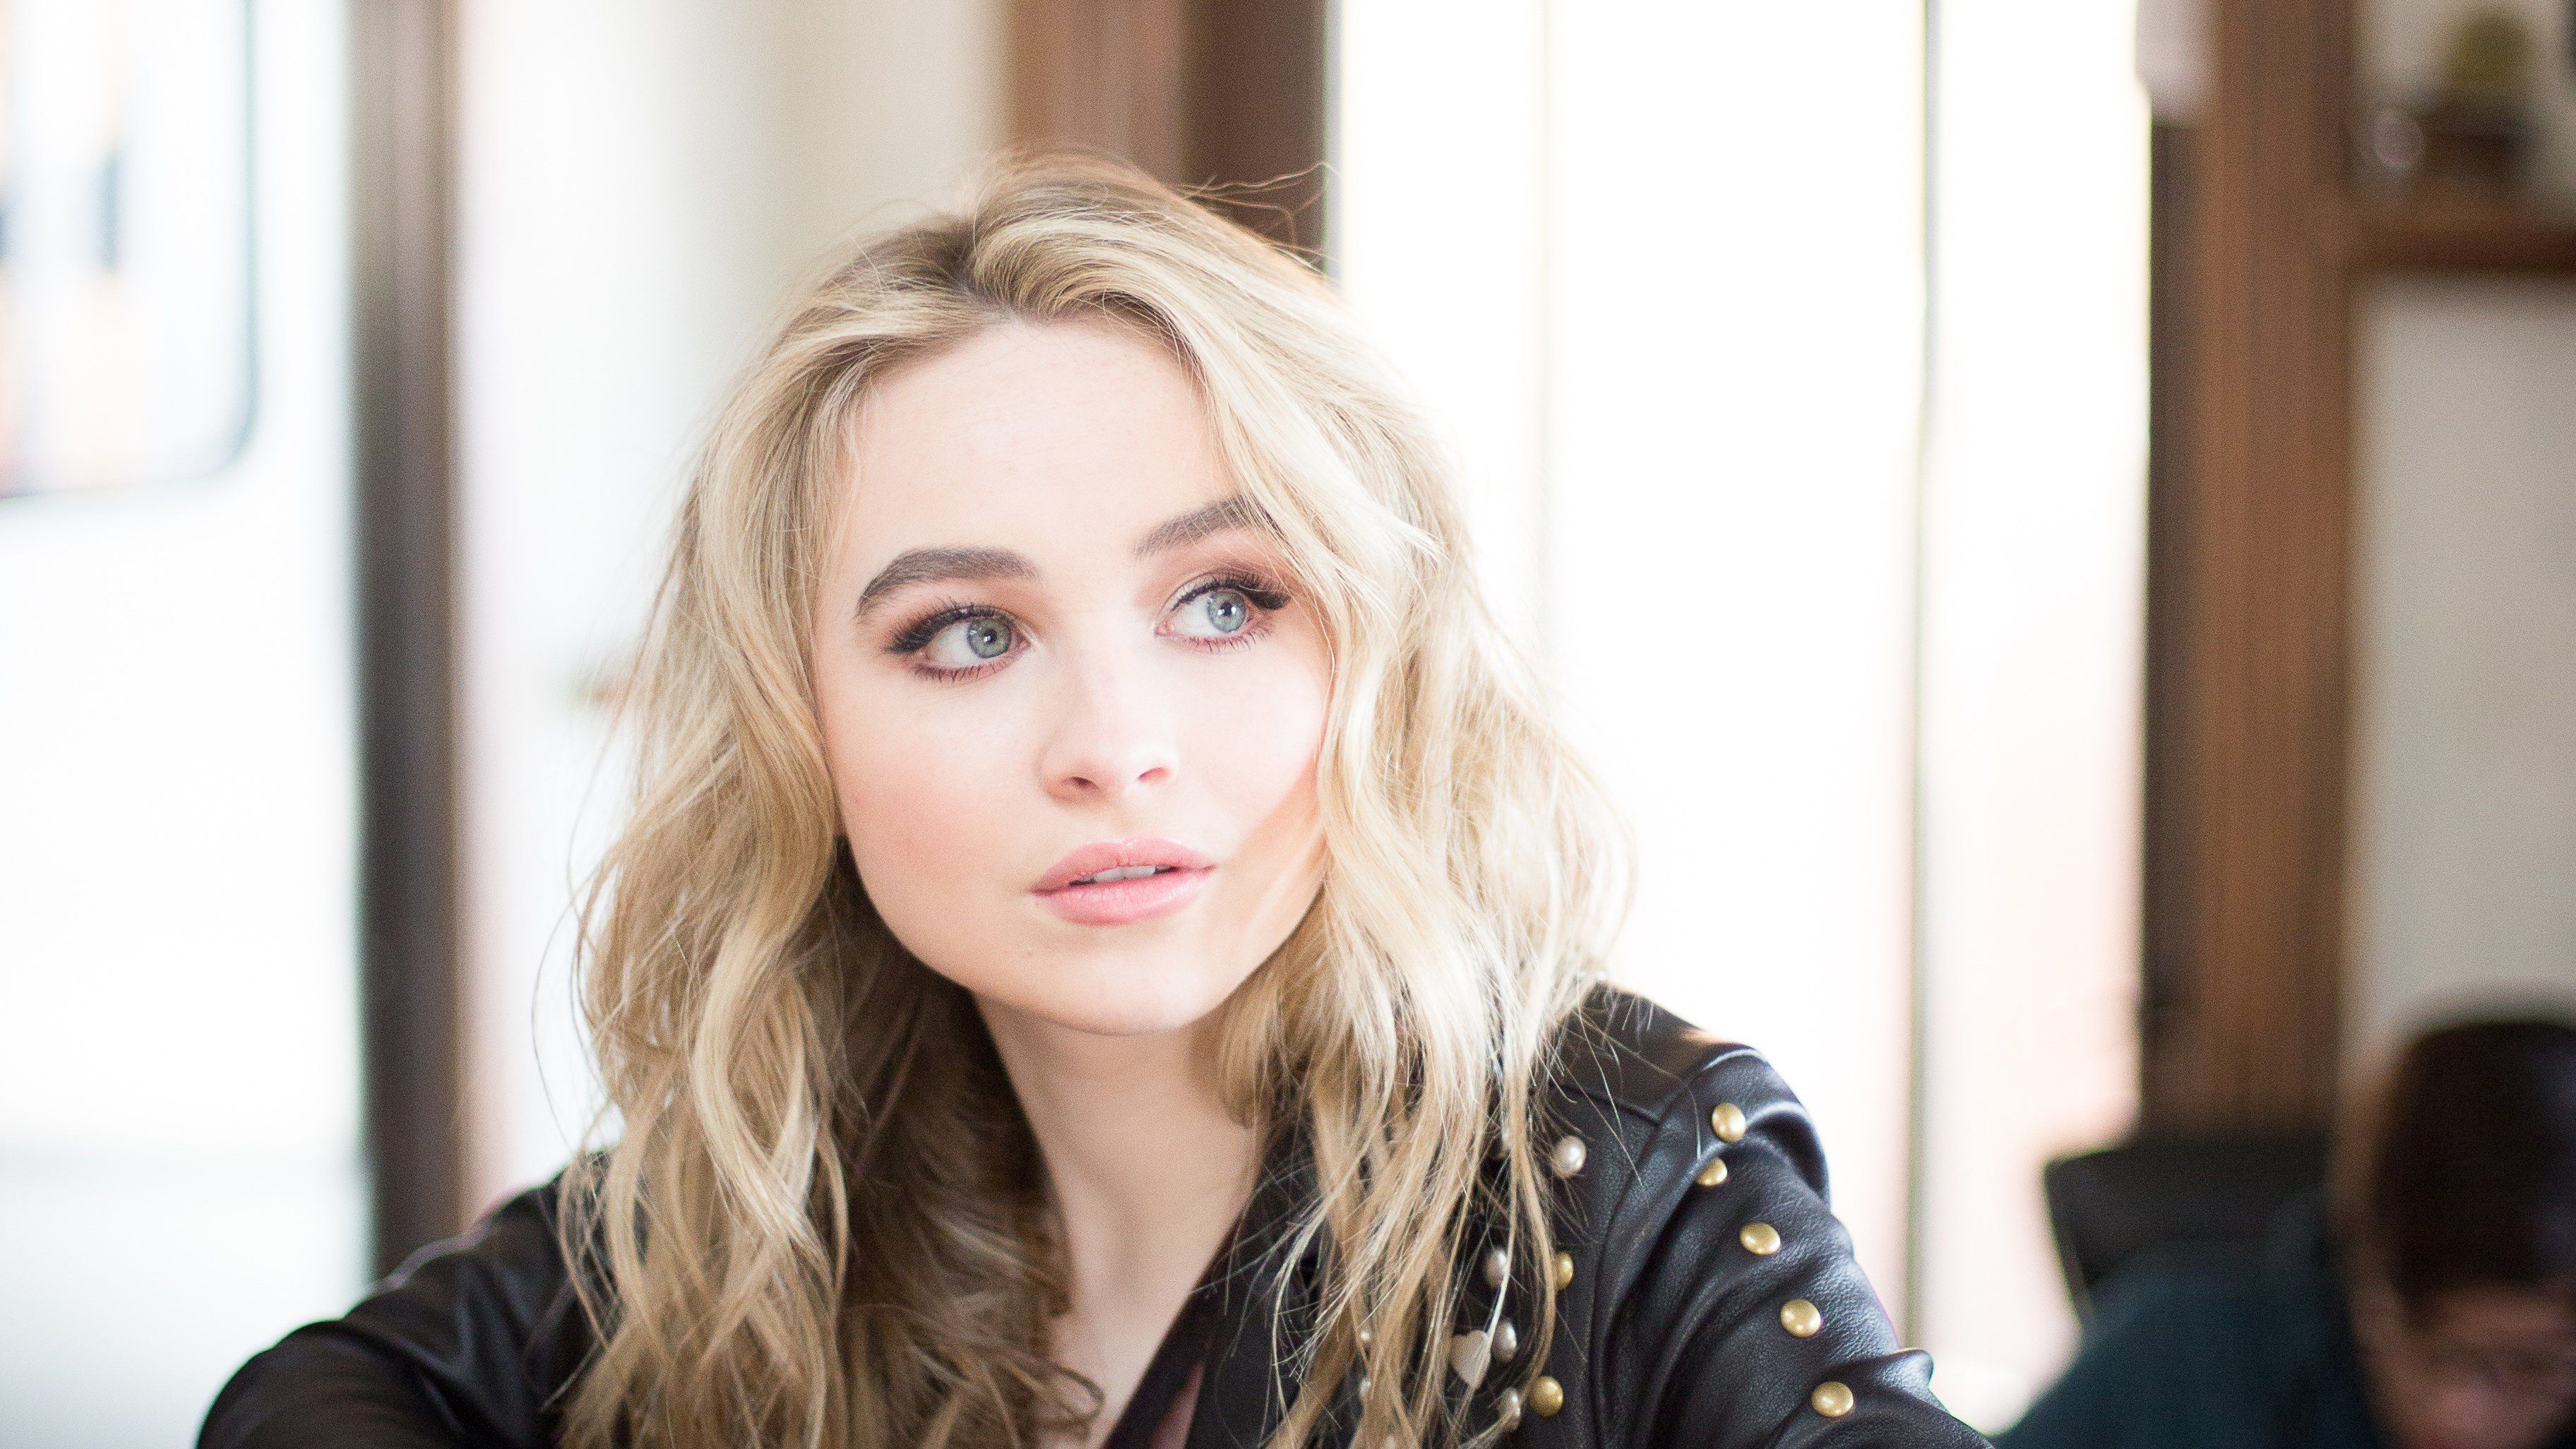 Gorgeous sabrina carpenter 2018 hd music 4k wallpapers - Sabrina carpenter hd wallpaper ...